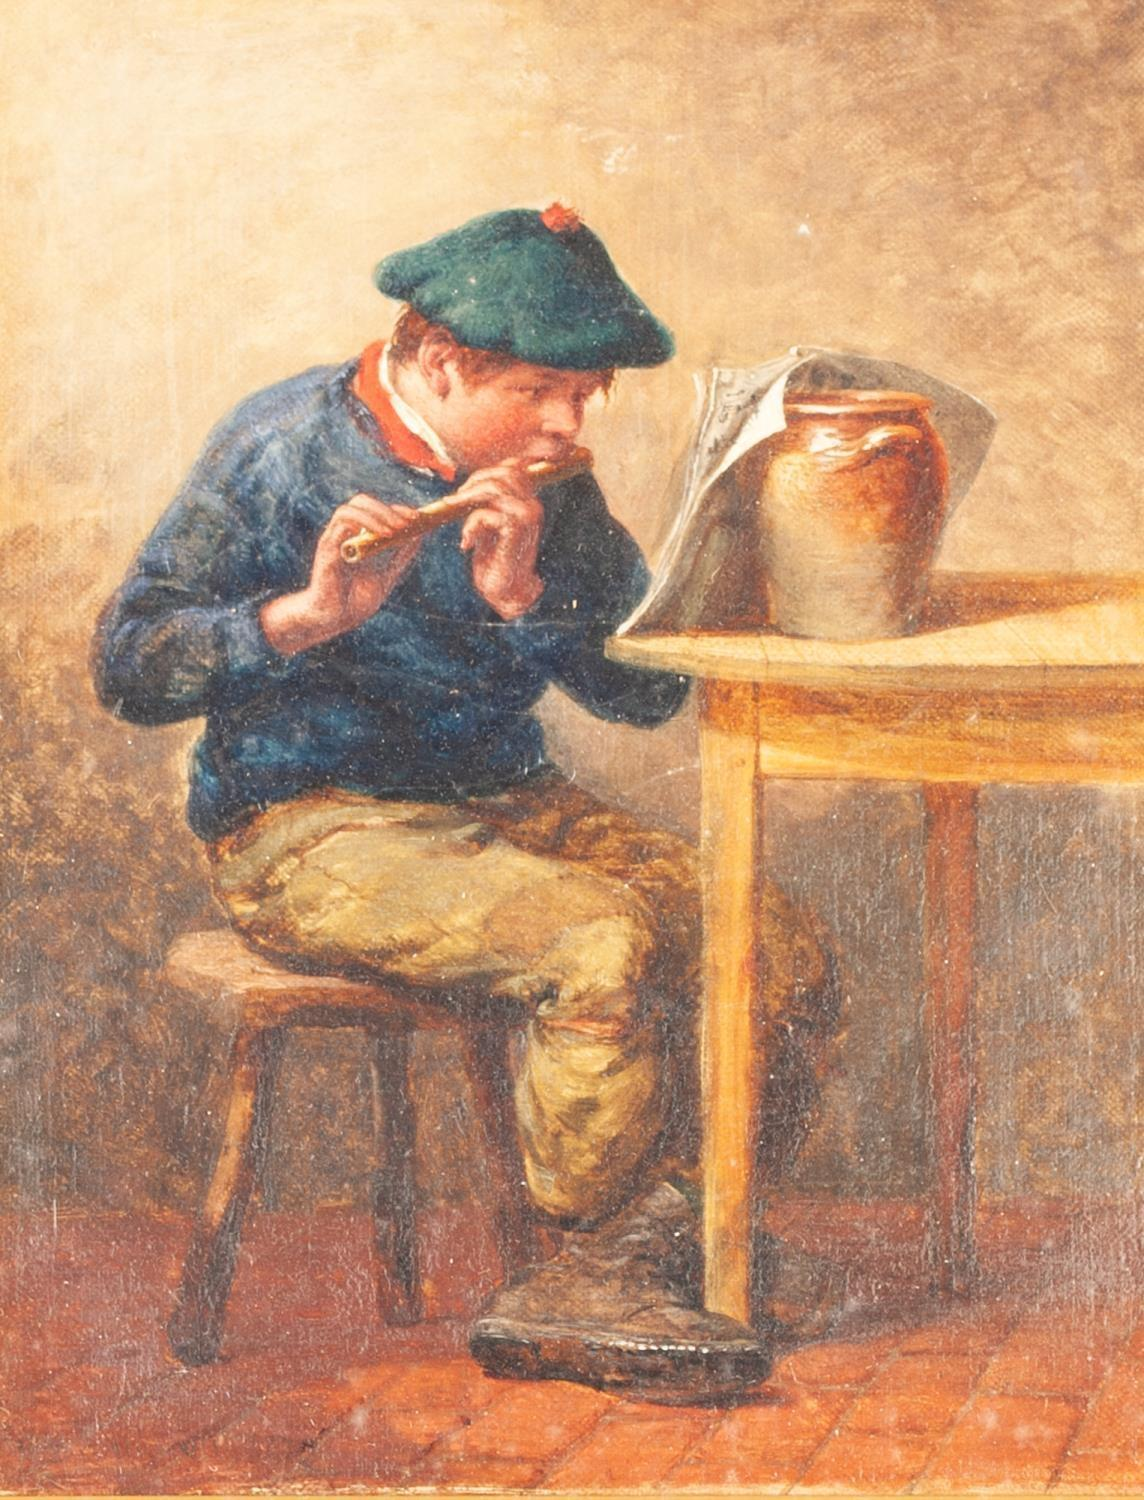 Lot 243 - WILLIAM BROMLEY (fl. 1835-88) OIL PAINTING ON CANVAS A Rustic interior with a young boy sat at the